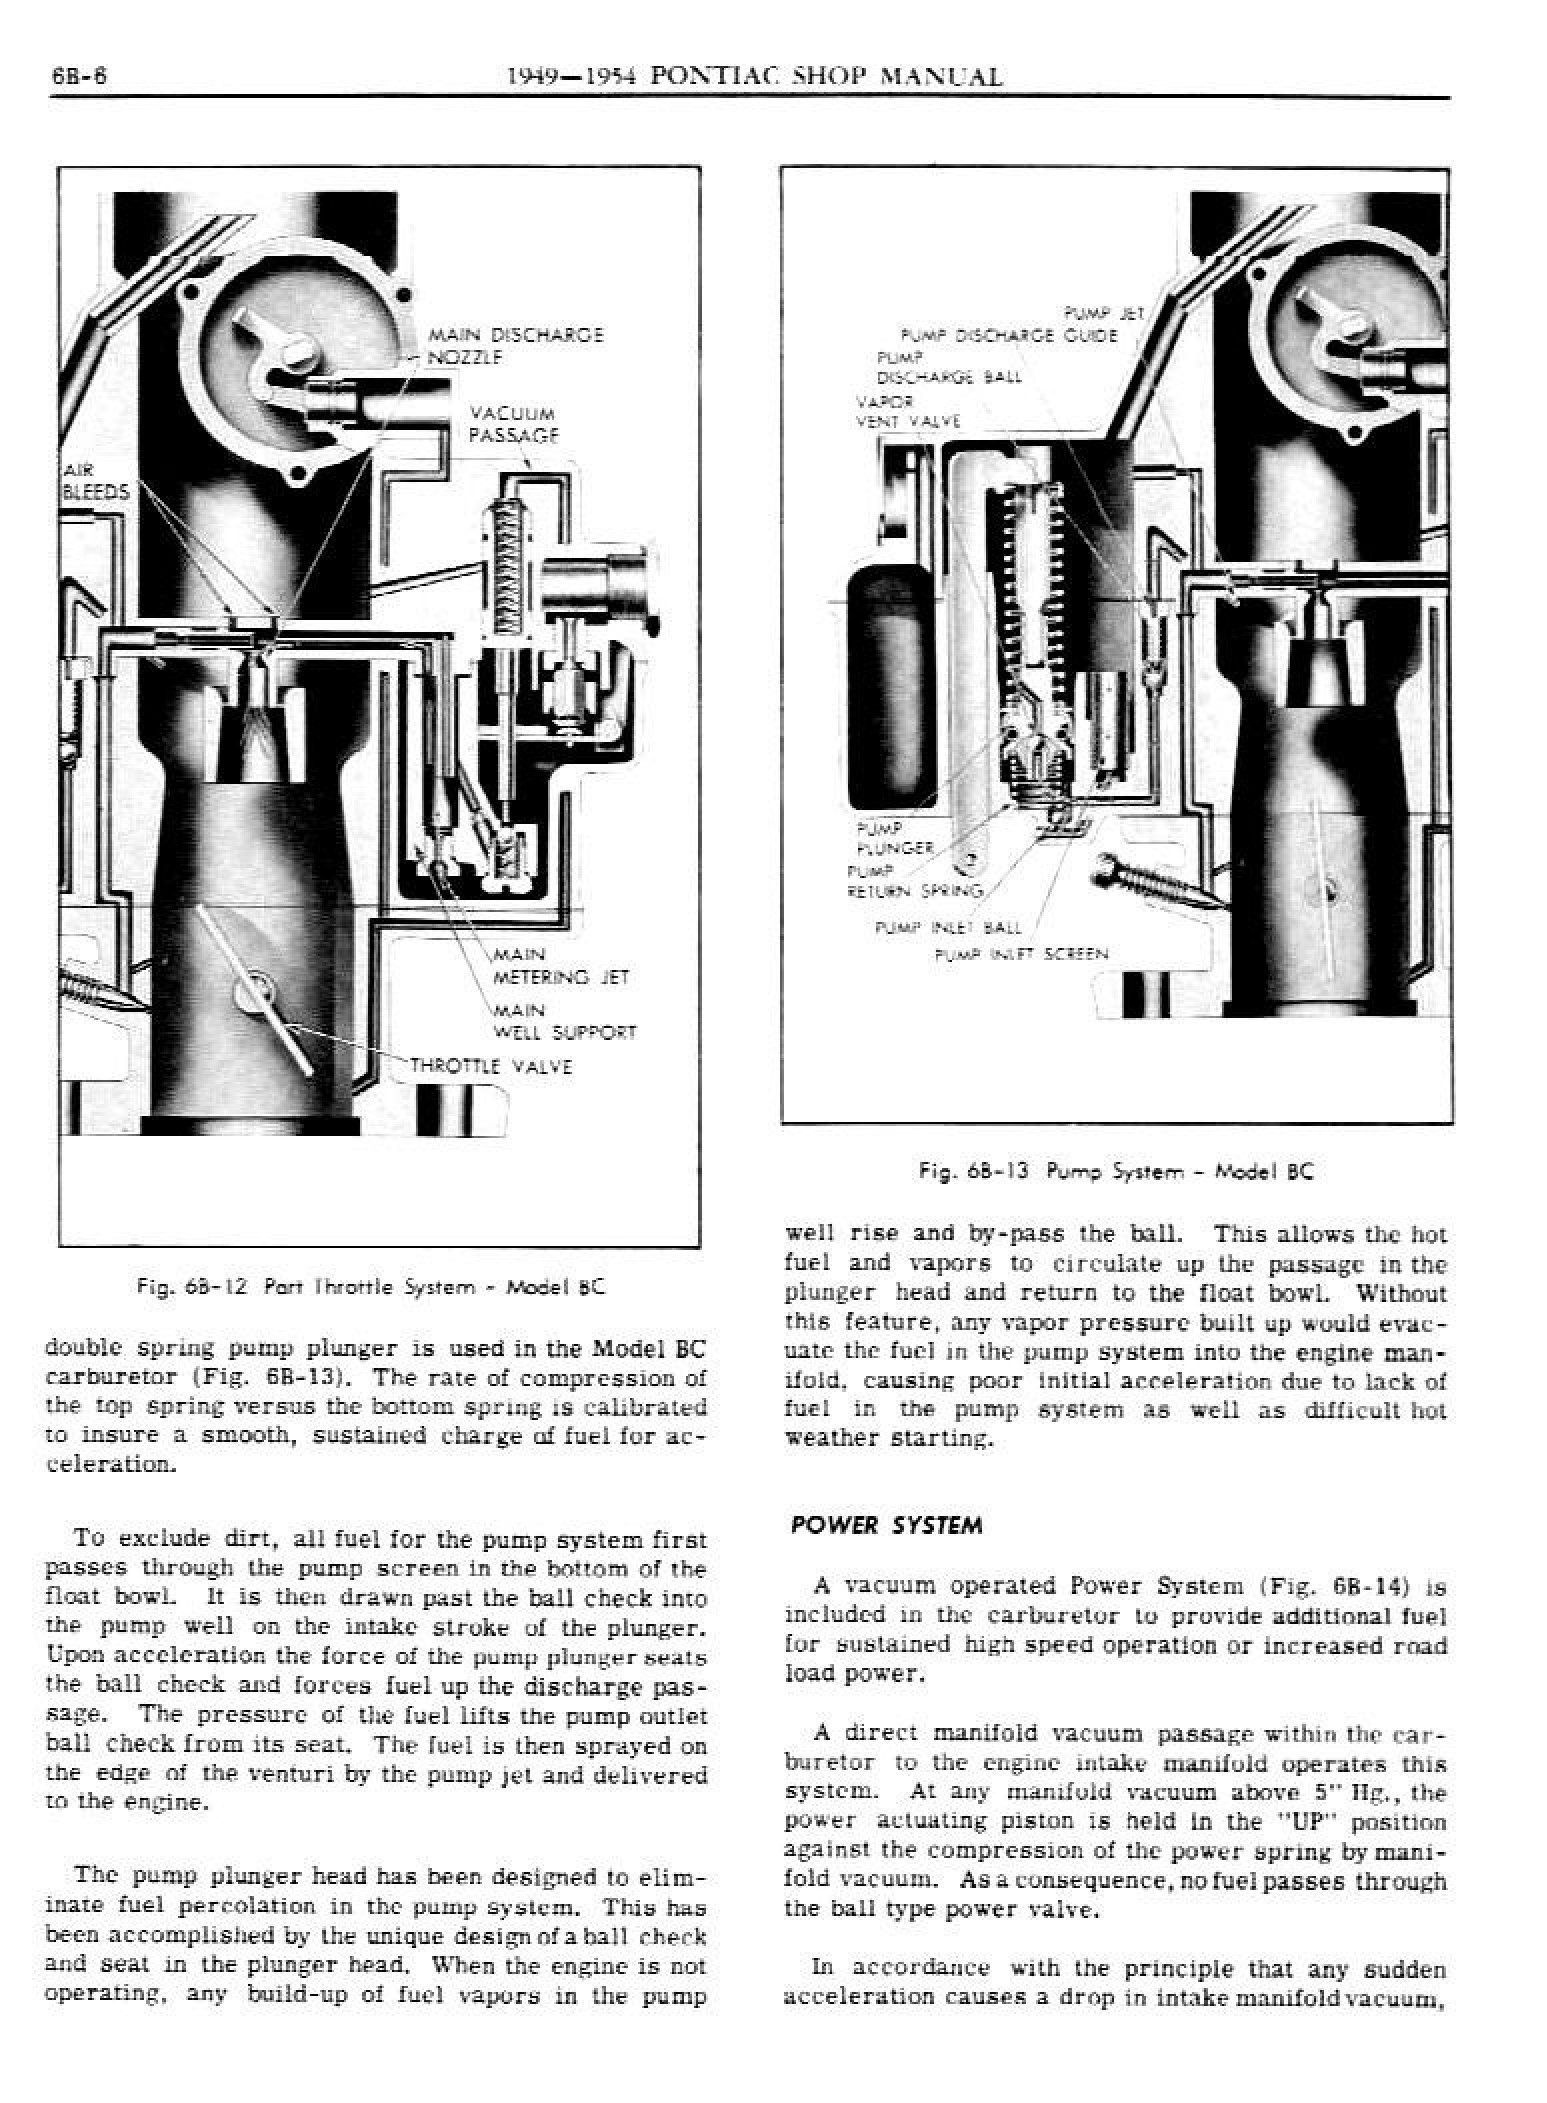 1949 Pontiac Shop Manual- Engine Fuel Page 6 of 42